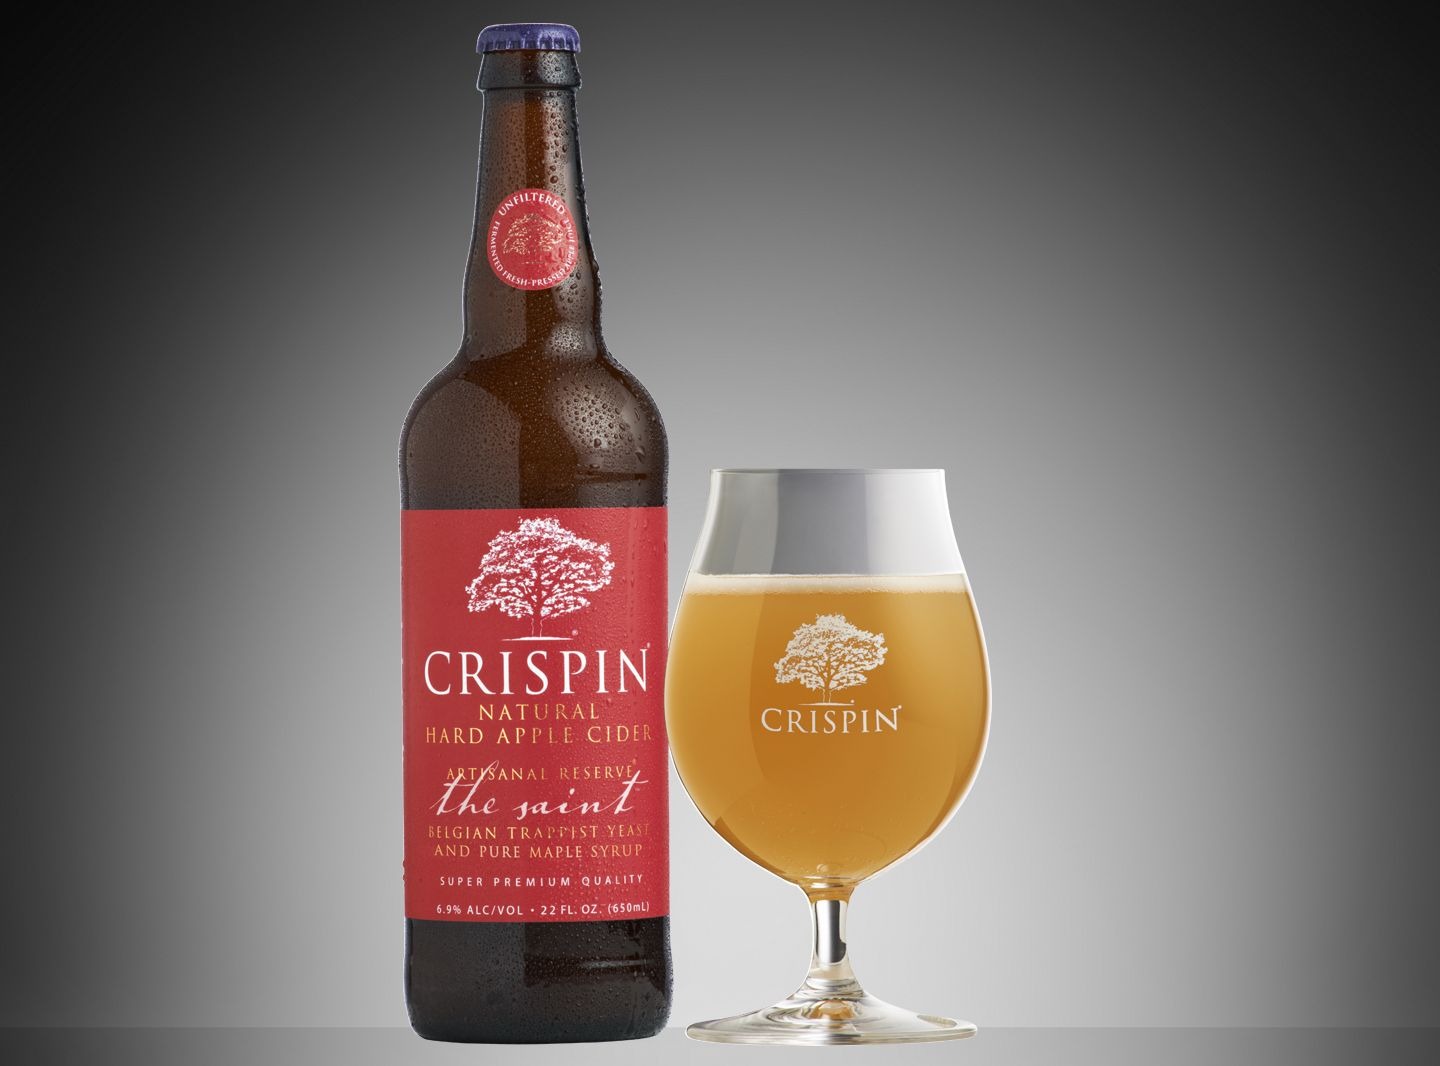 Crispin Artisanal Reserve The Saint Stunningly Fresh Apple With Maple Yeast Herbal Flavors Superb Perhaps My Favorit Crispin Cider Cider Hard Apple Cider